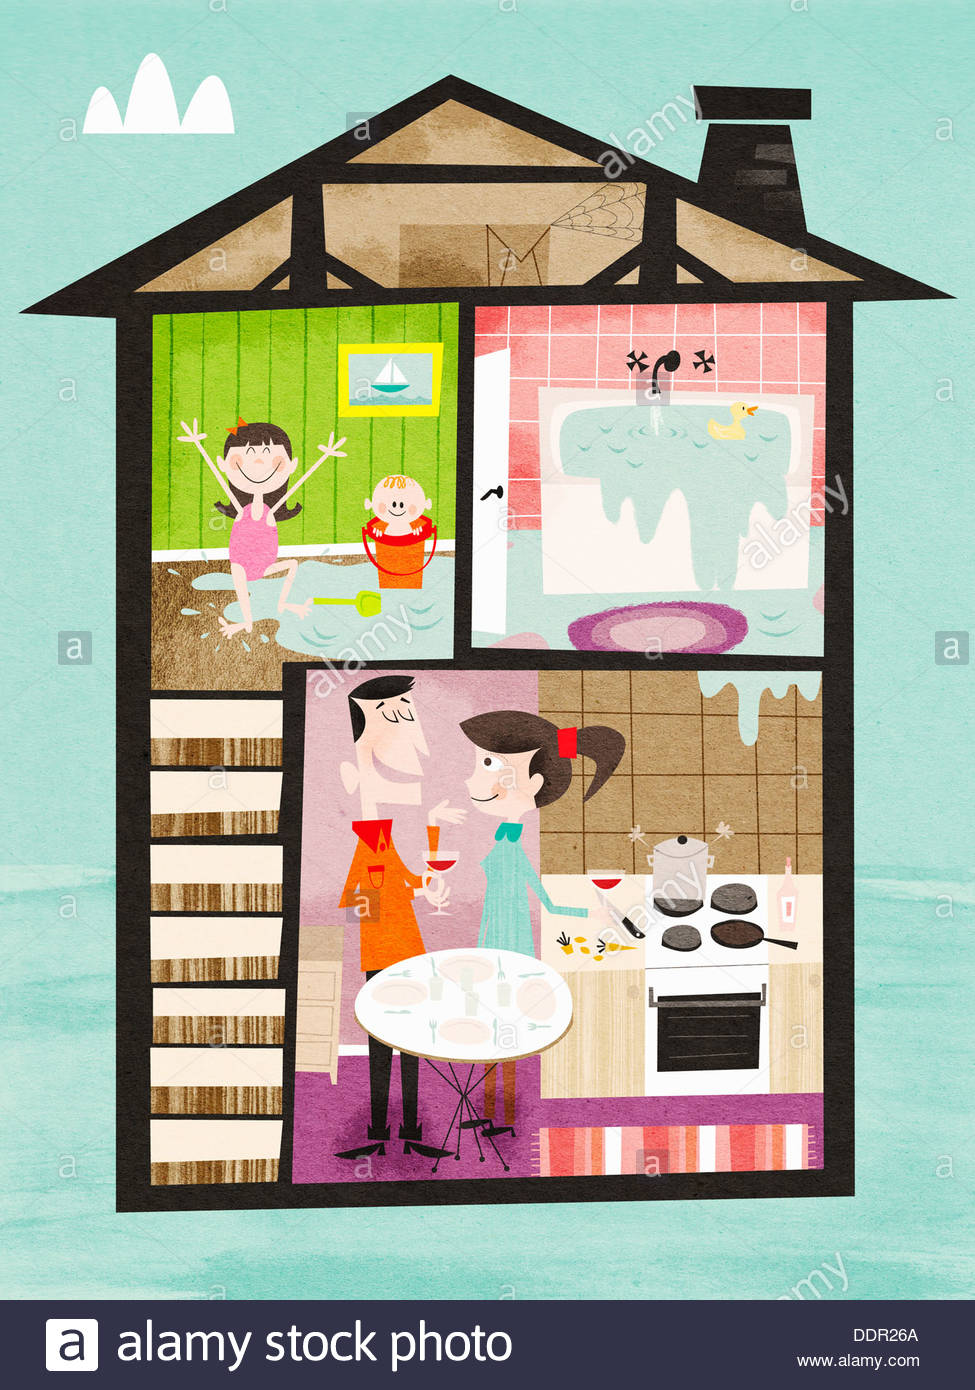 Children playing in water from overflowing bath upstairs and parents drinking wine downstairs - Stock Image